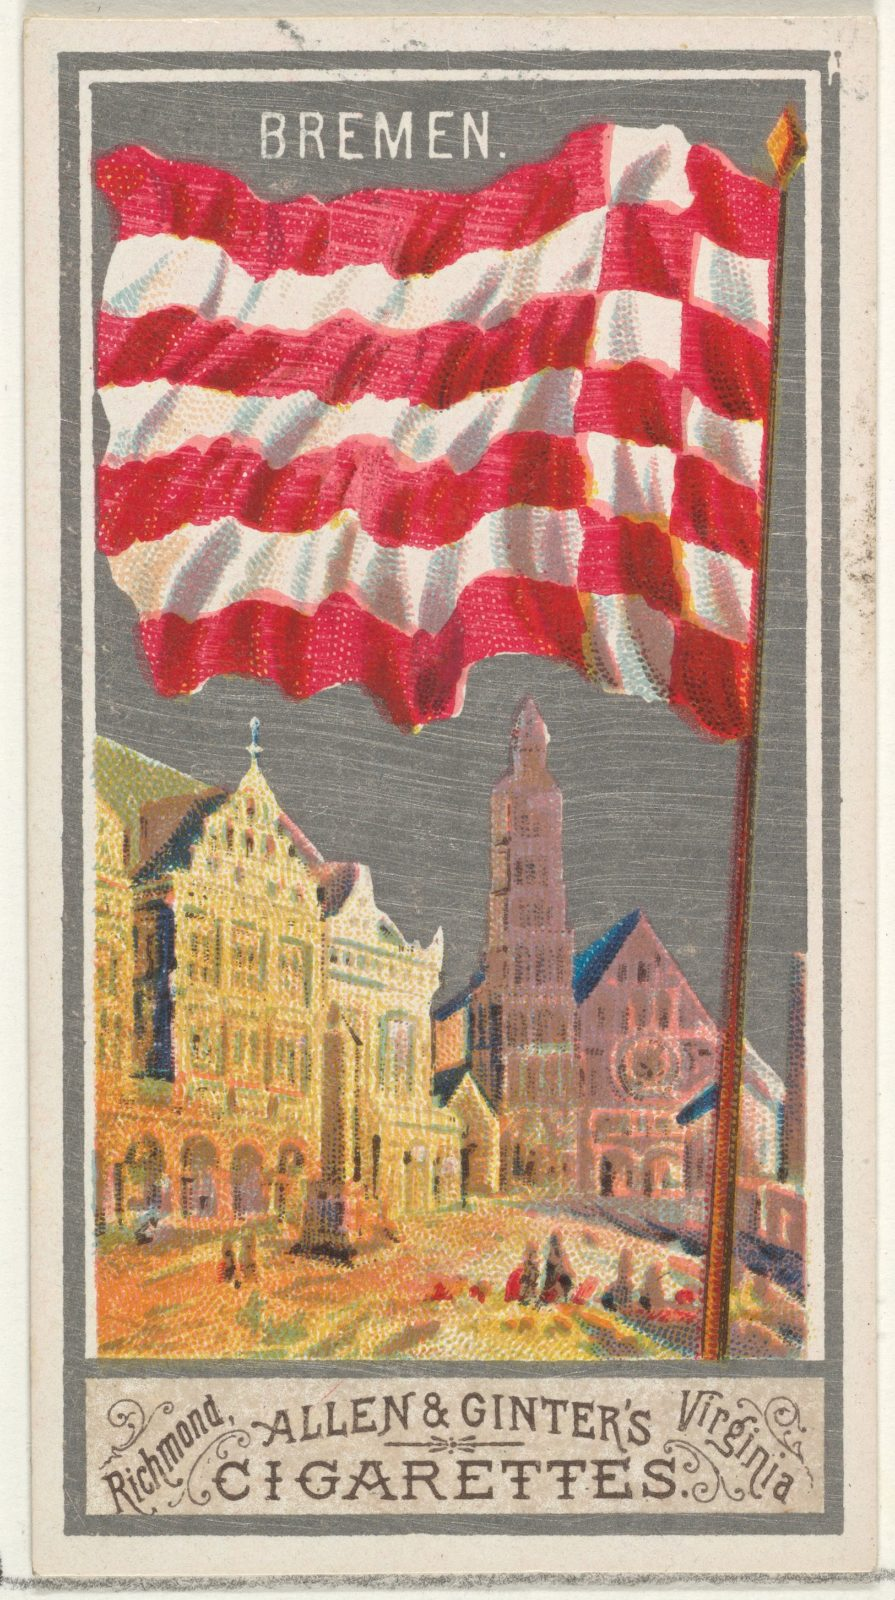 Bremen, from the City Flags series (N6) for Allen & Ginter Cigarettes Brands